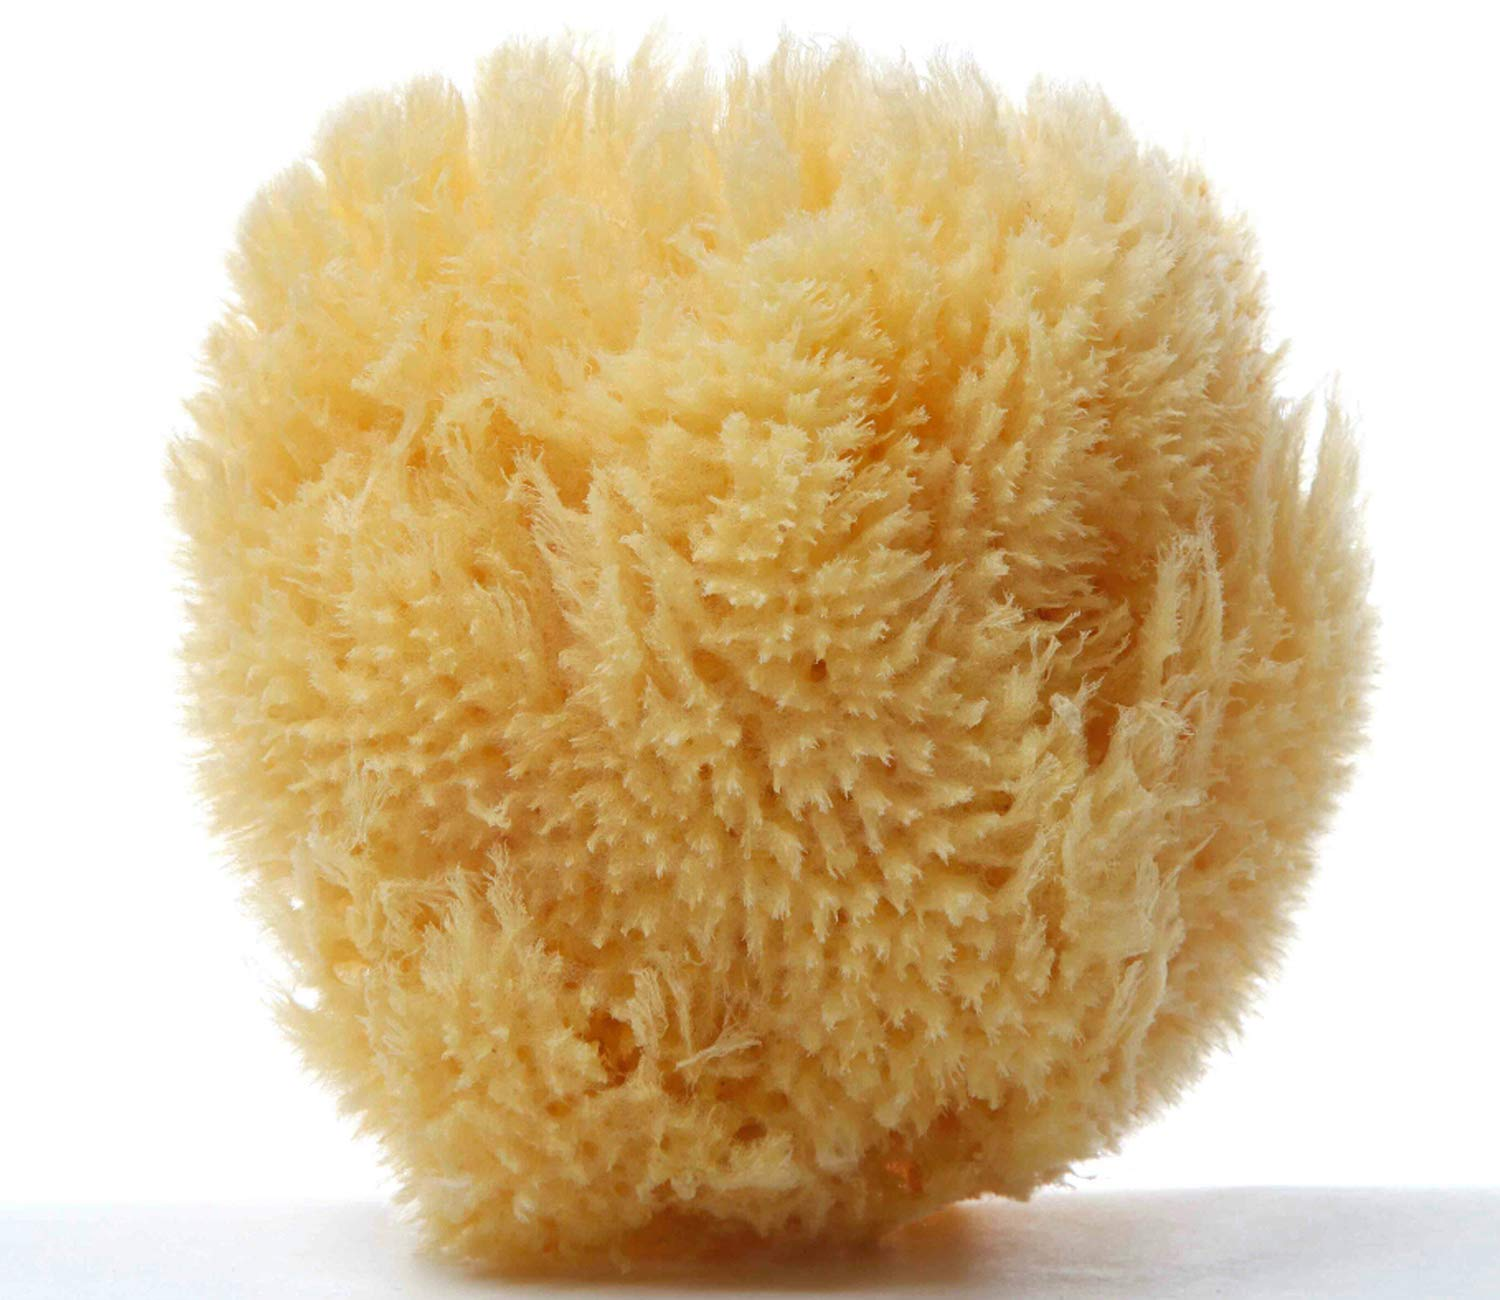 Sea Nature Natural Sea Sponge Brand 5-6 Grada Type Home Cleaning Body Bath Ideal Baby Bathing Face Cleaning Guaranteed